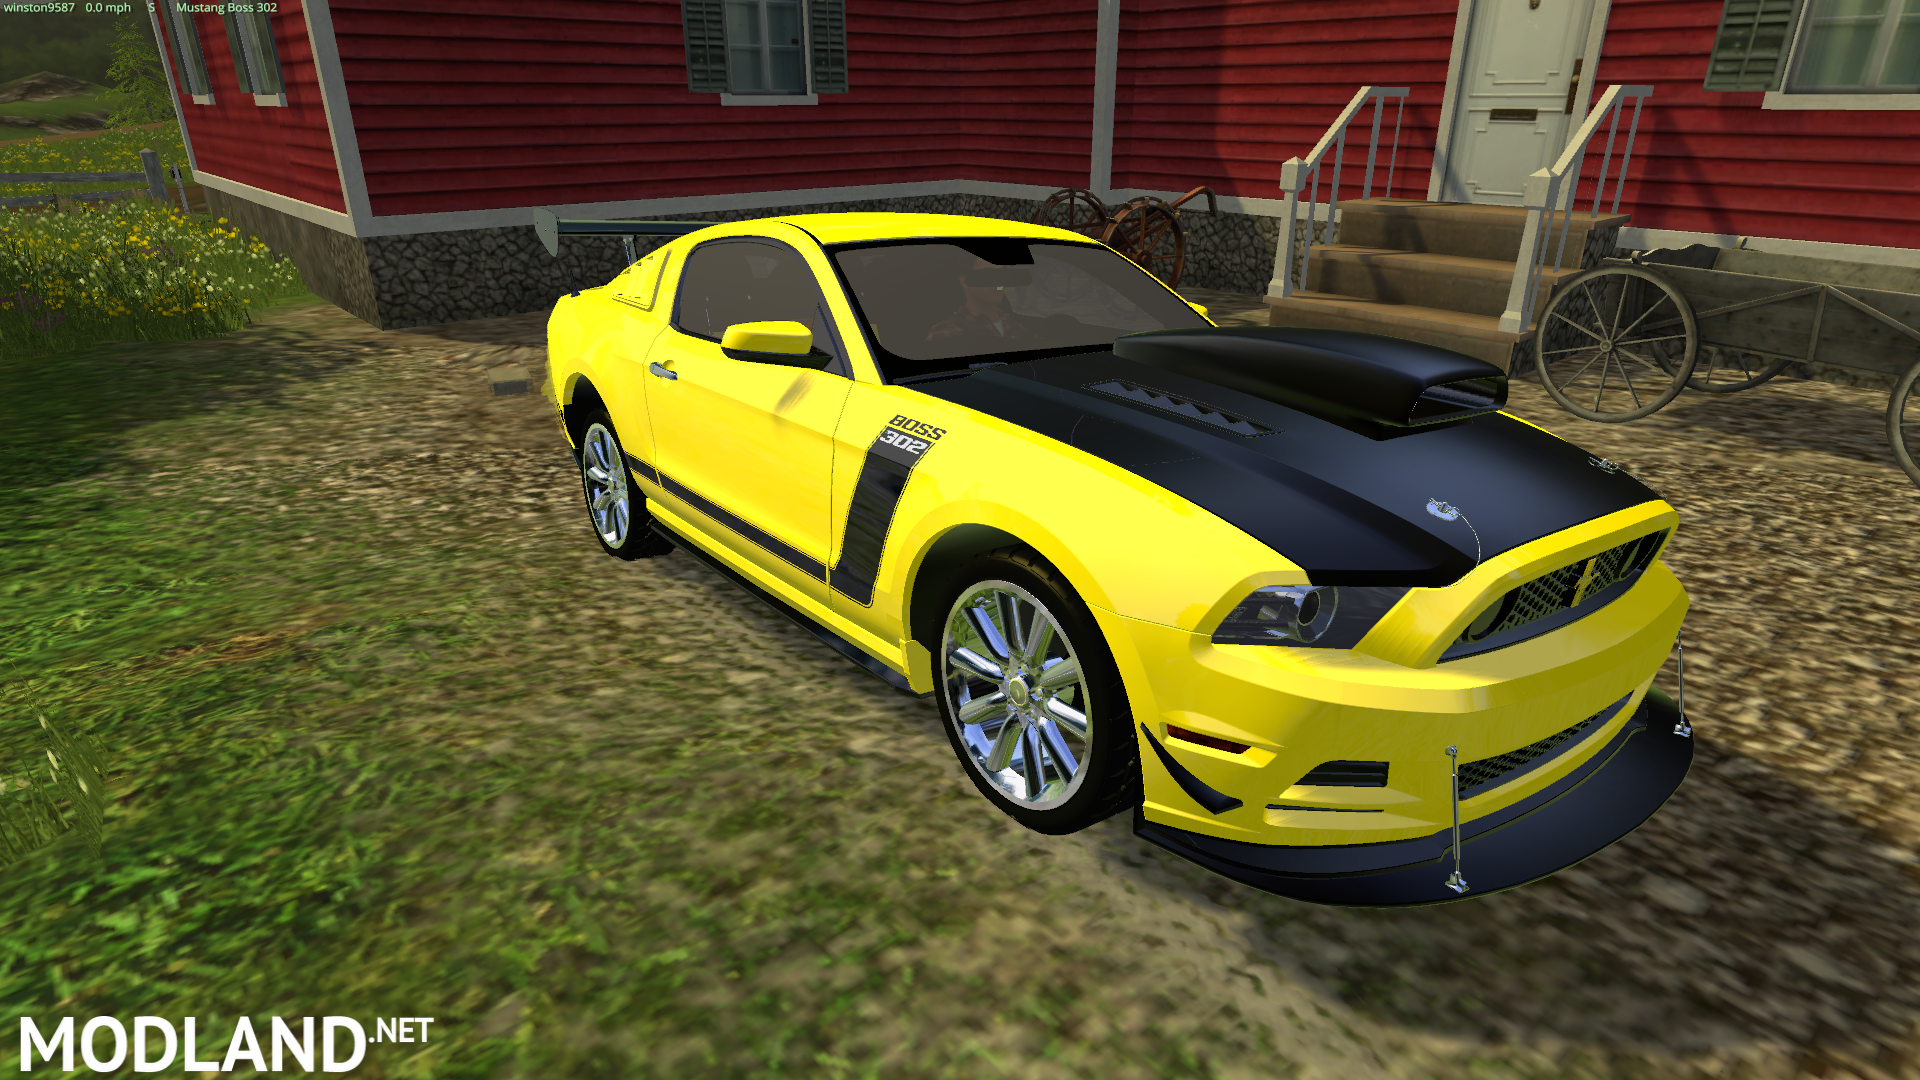 New Ford Flex Ford Mustang Boss302 mod for Farming Simulator 2015 / 15 ...